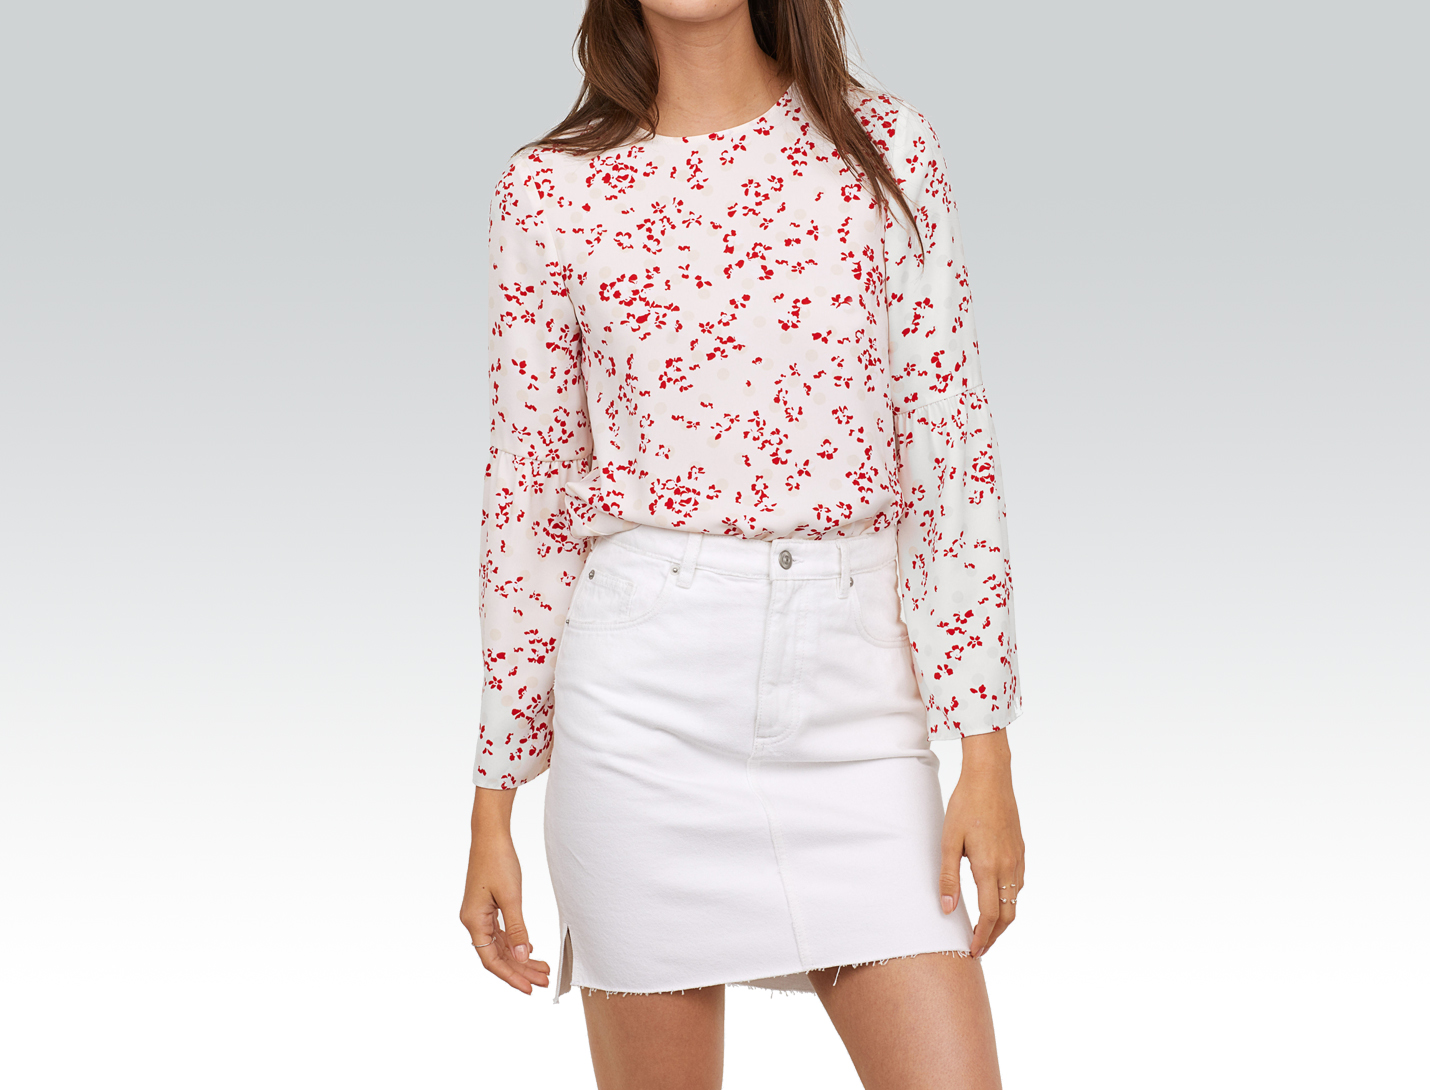 spring top from H&M